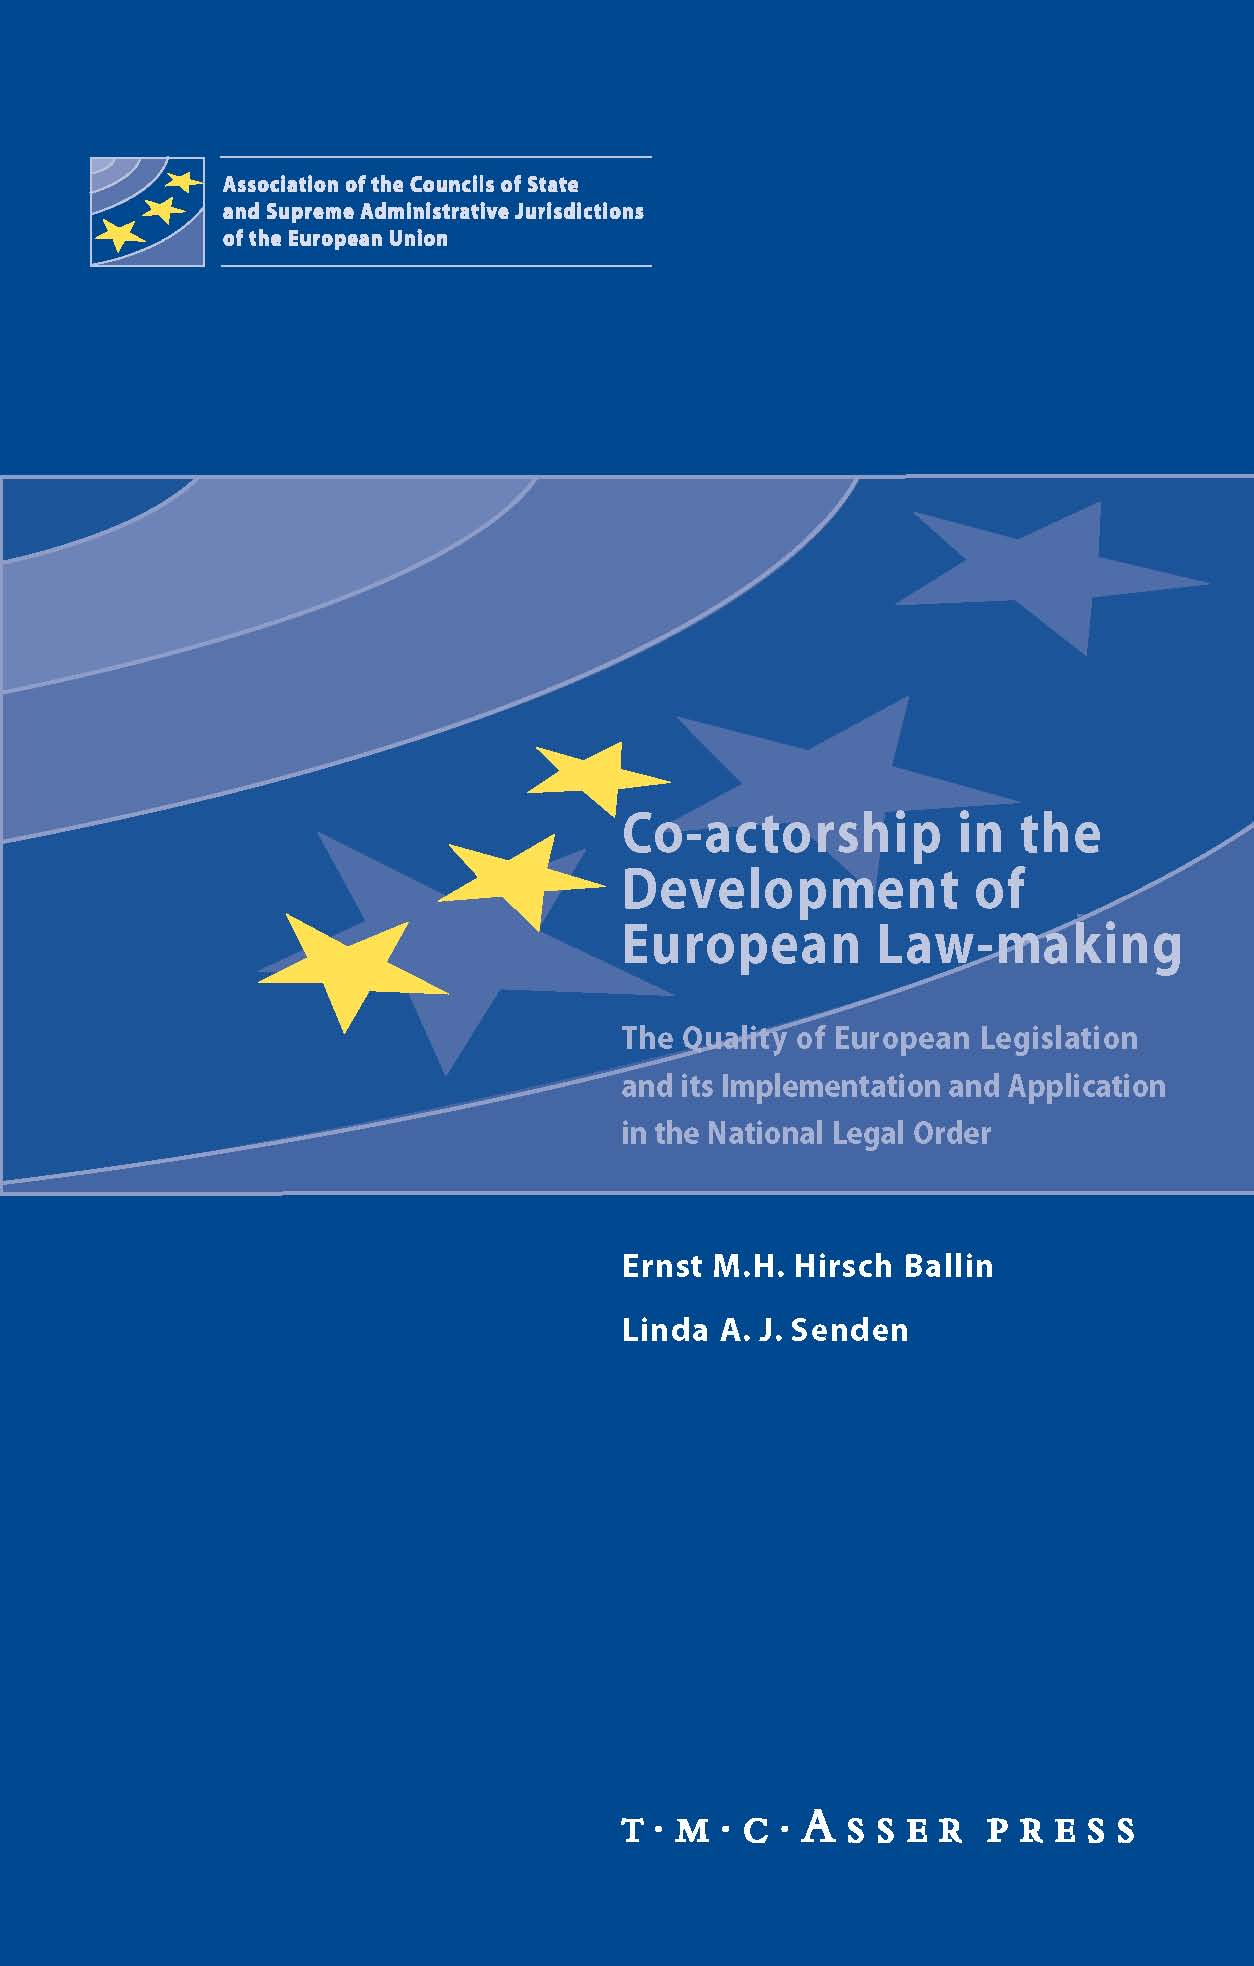 Co-actorship in the Development of European Law-Making - The Quality of European Legislation and its Implementation and Application in the National Legal Order